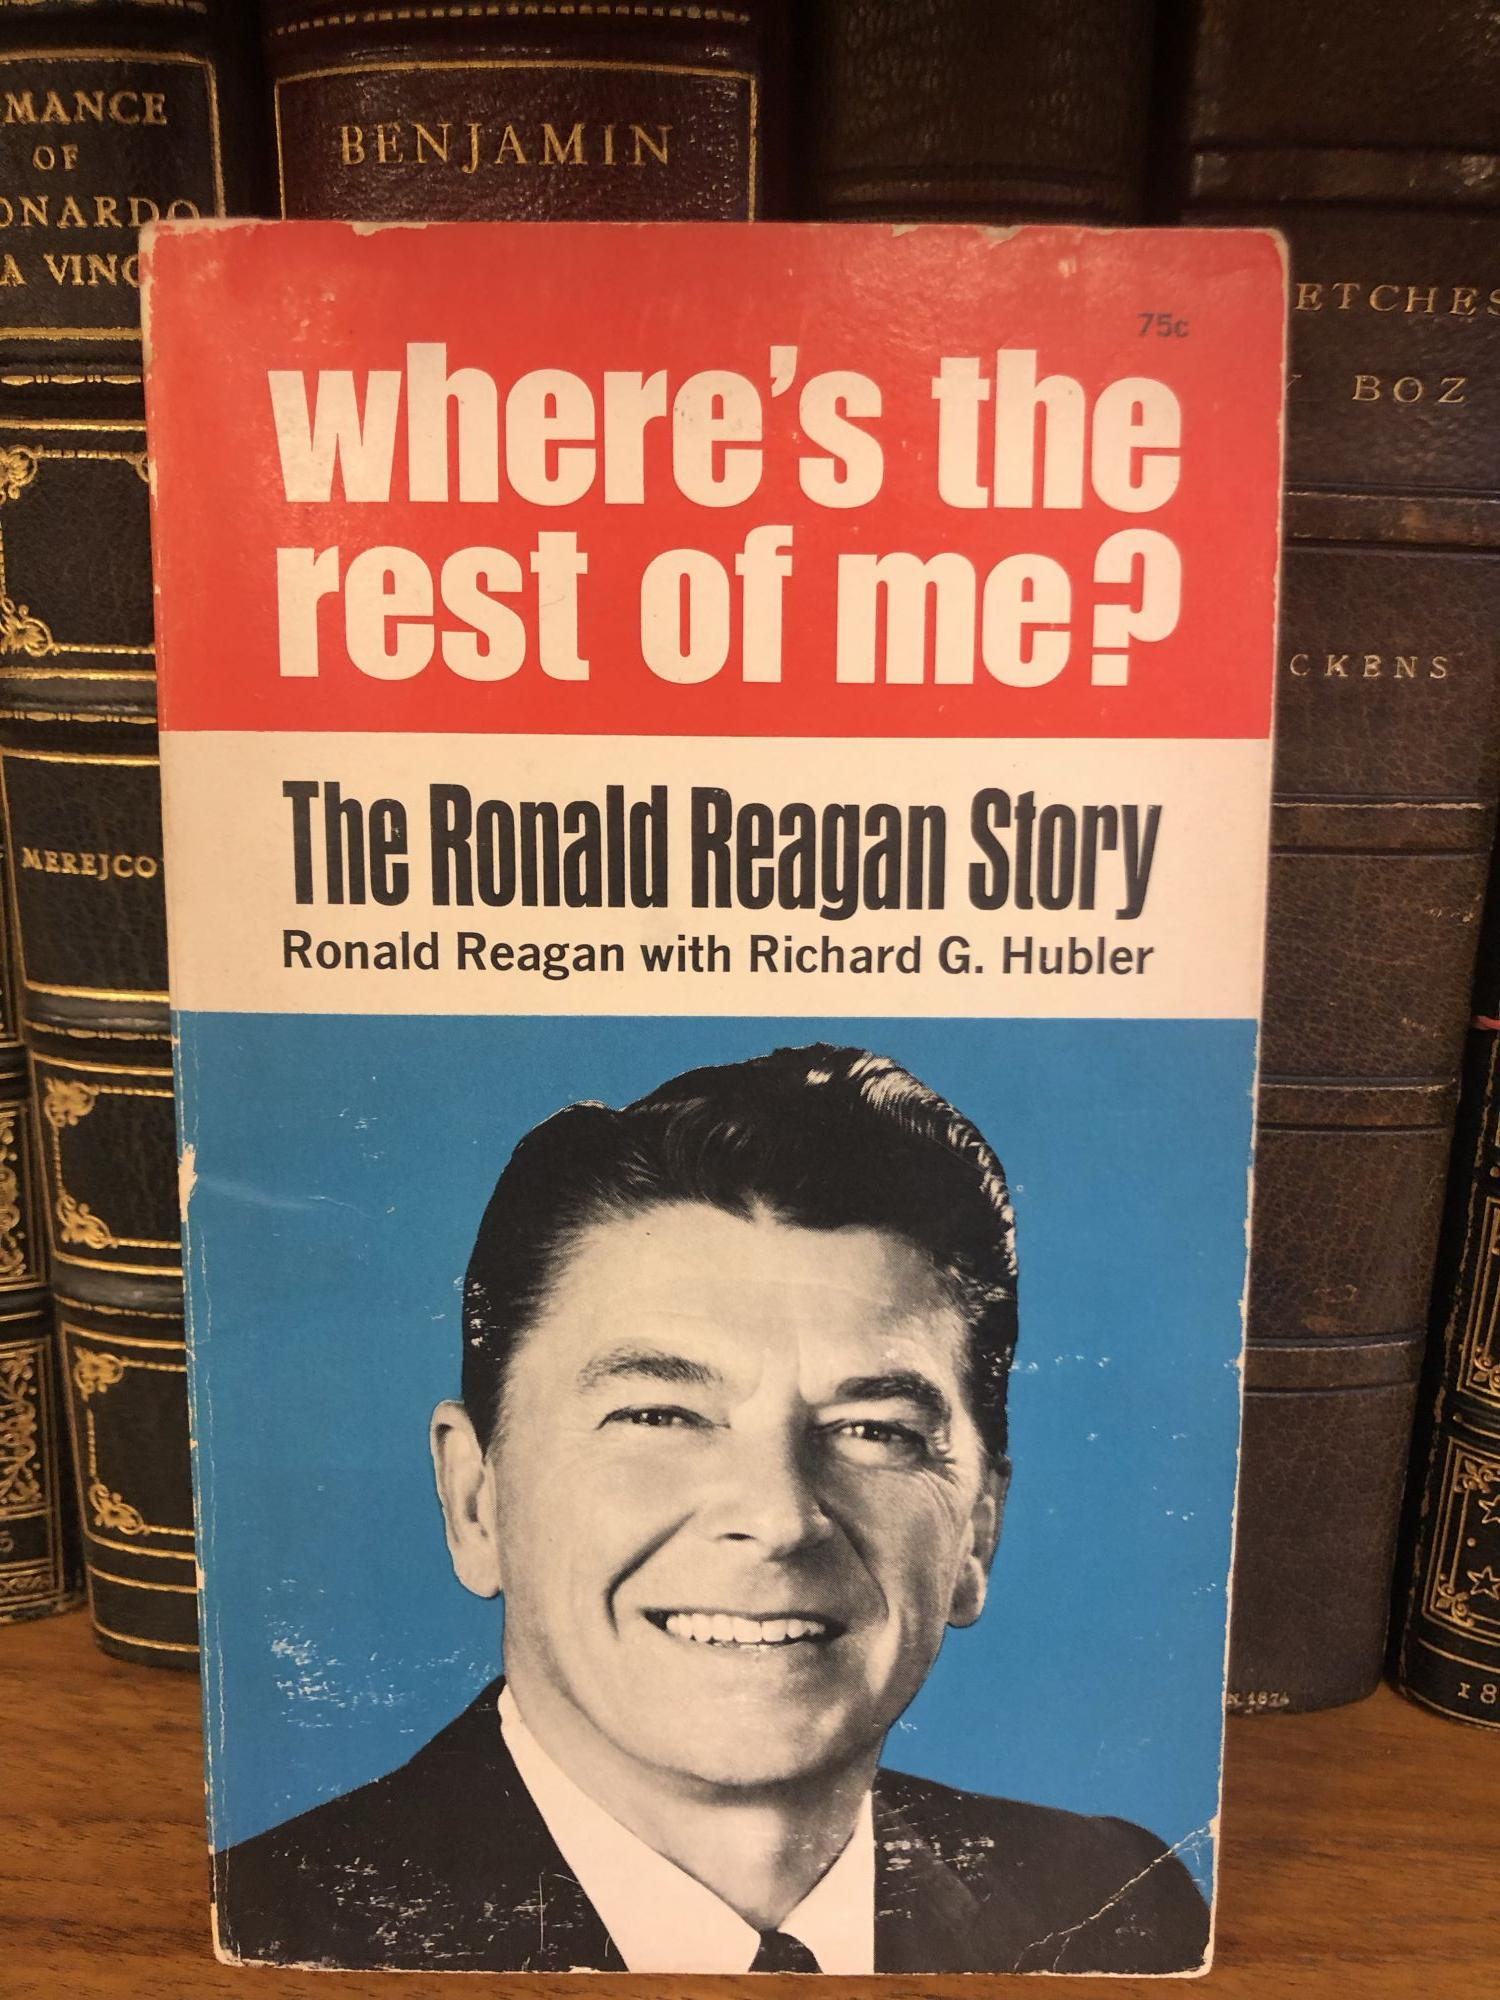 WHERE'S THE REST OF ME? THE RONALD REAGAN STORY [SIGNED]. Ronald Reagan, Richard G. Hubler.